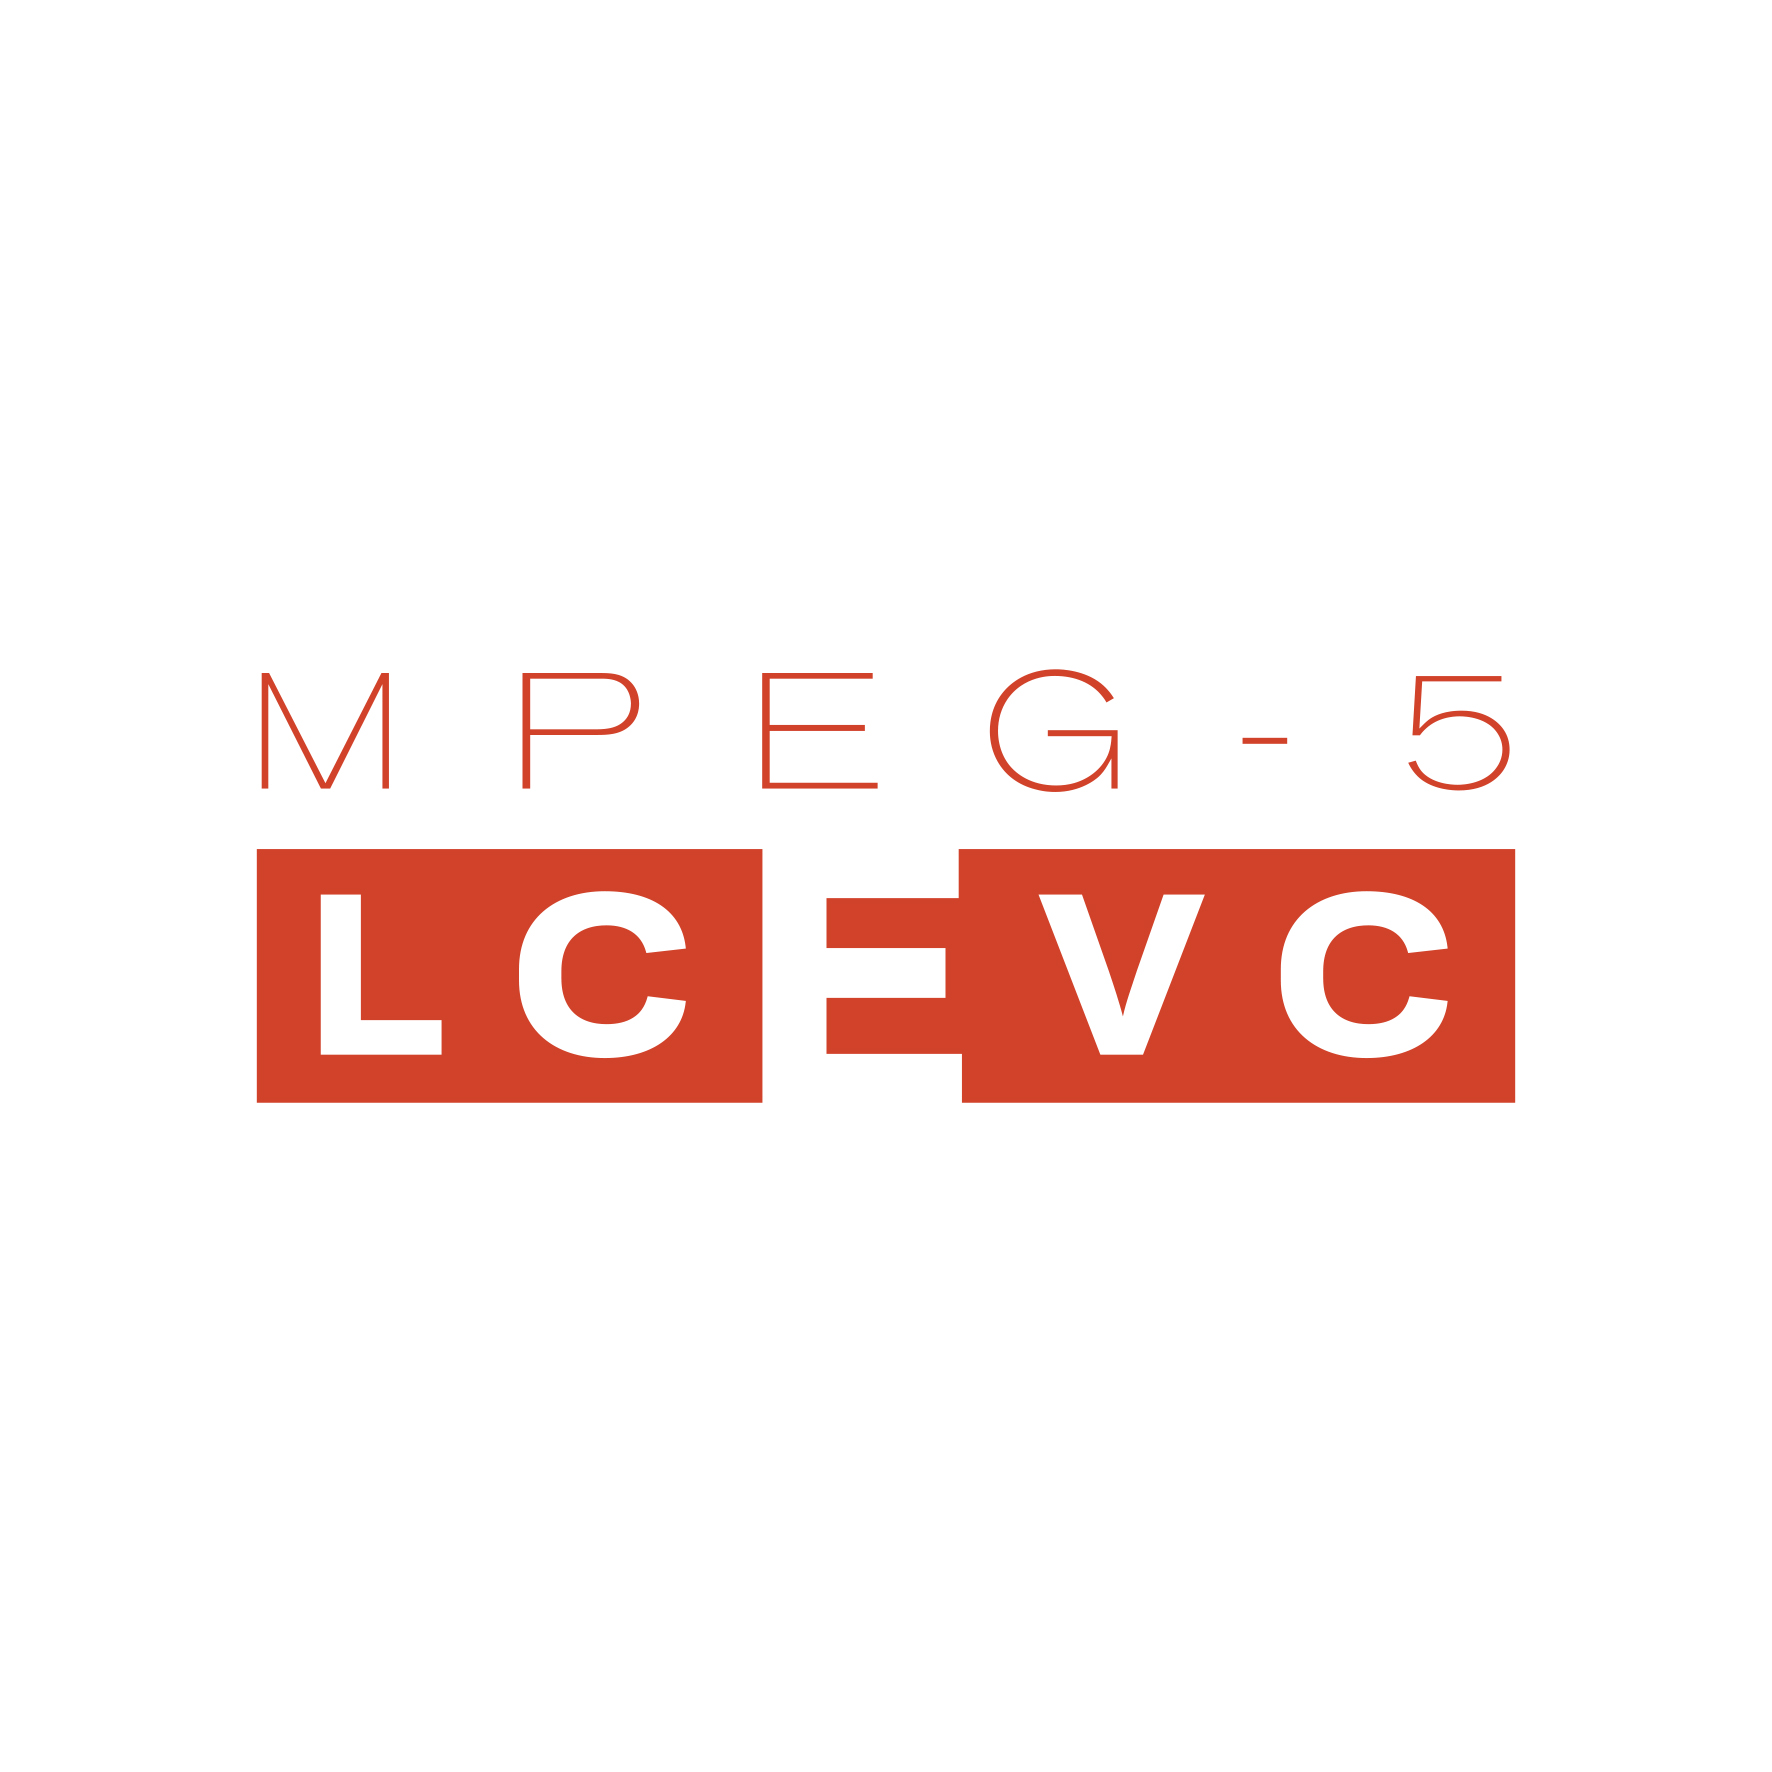 LCEVC reaches International Standard completion